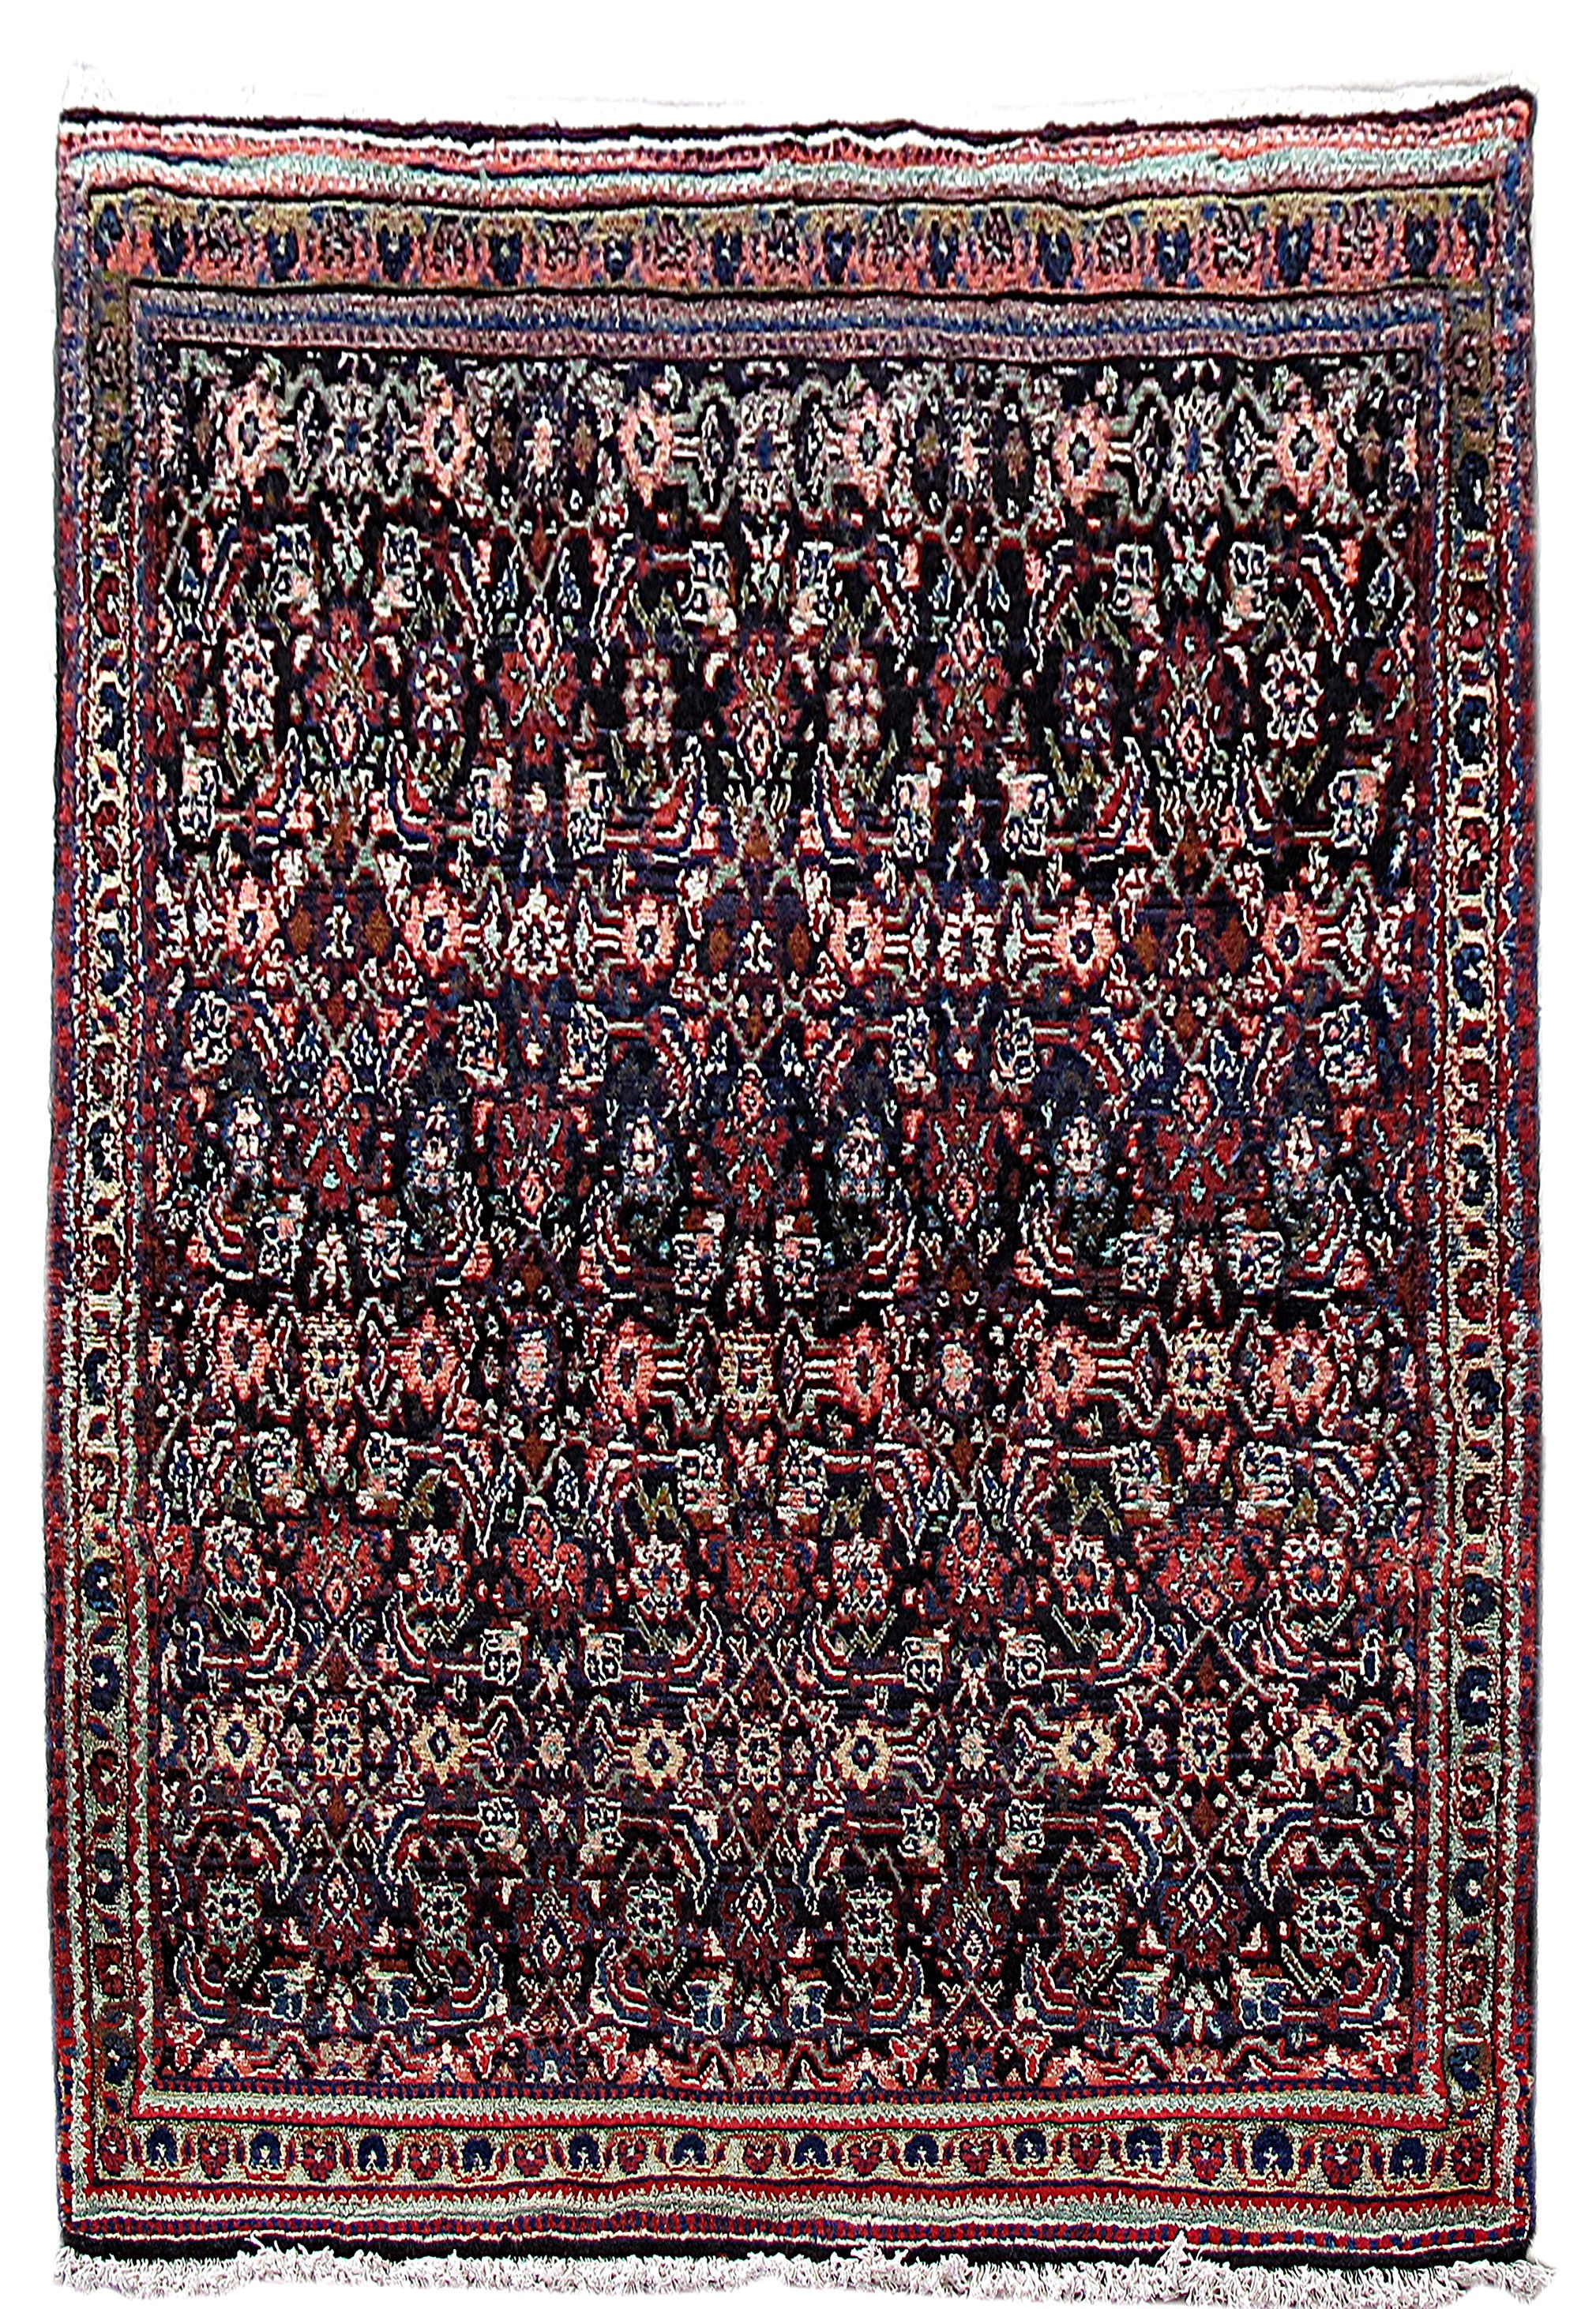 Cheap rugs online for Cheap rugs online